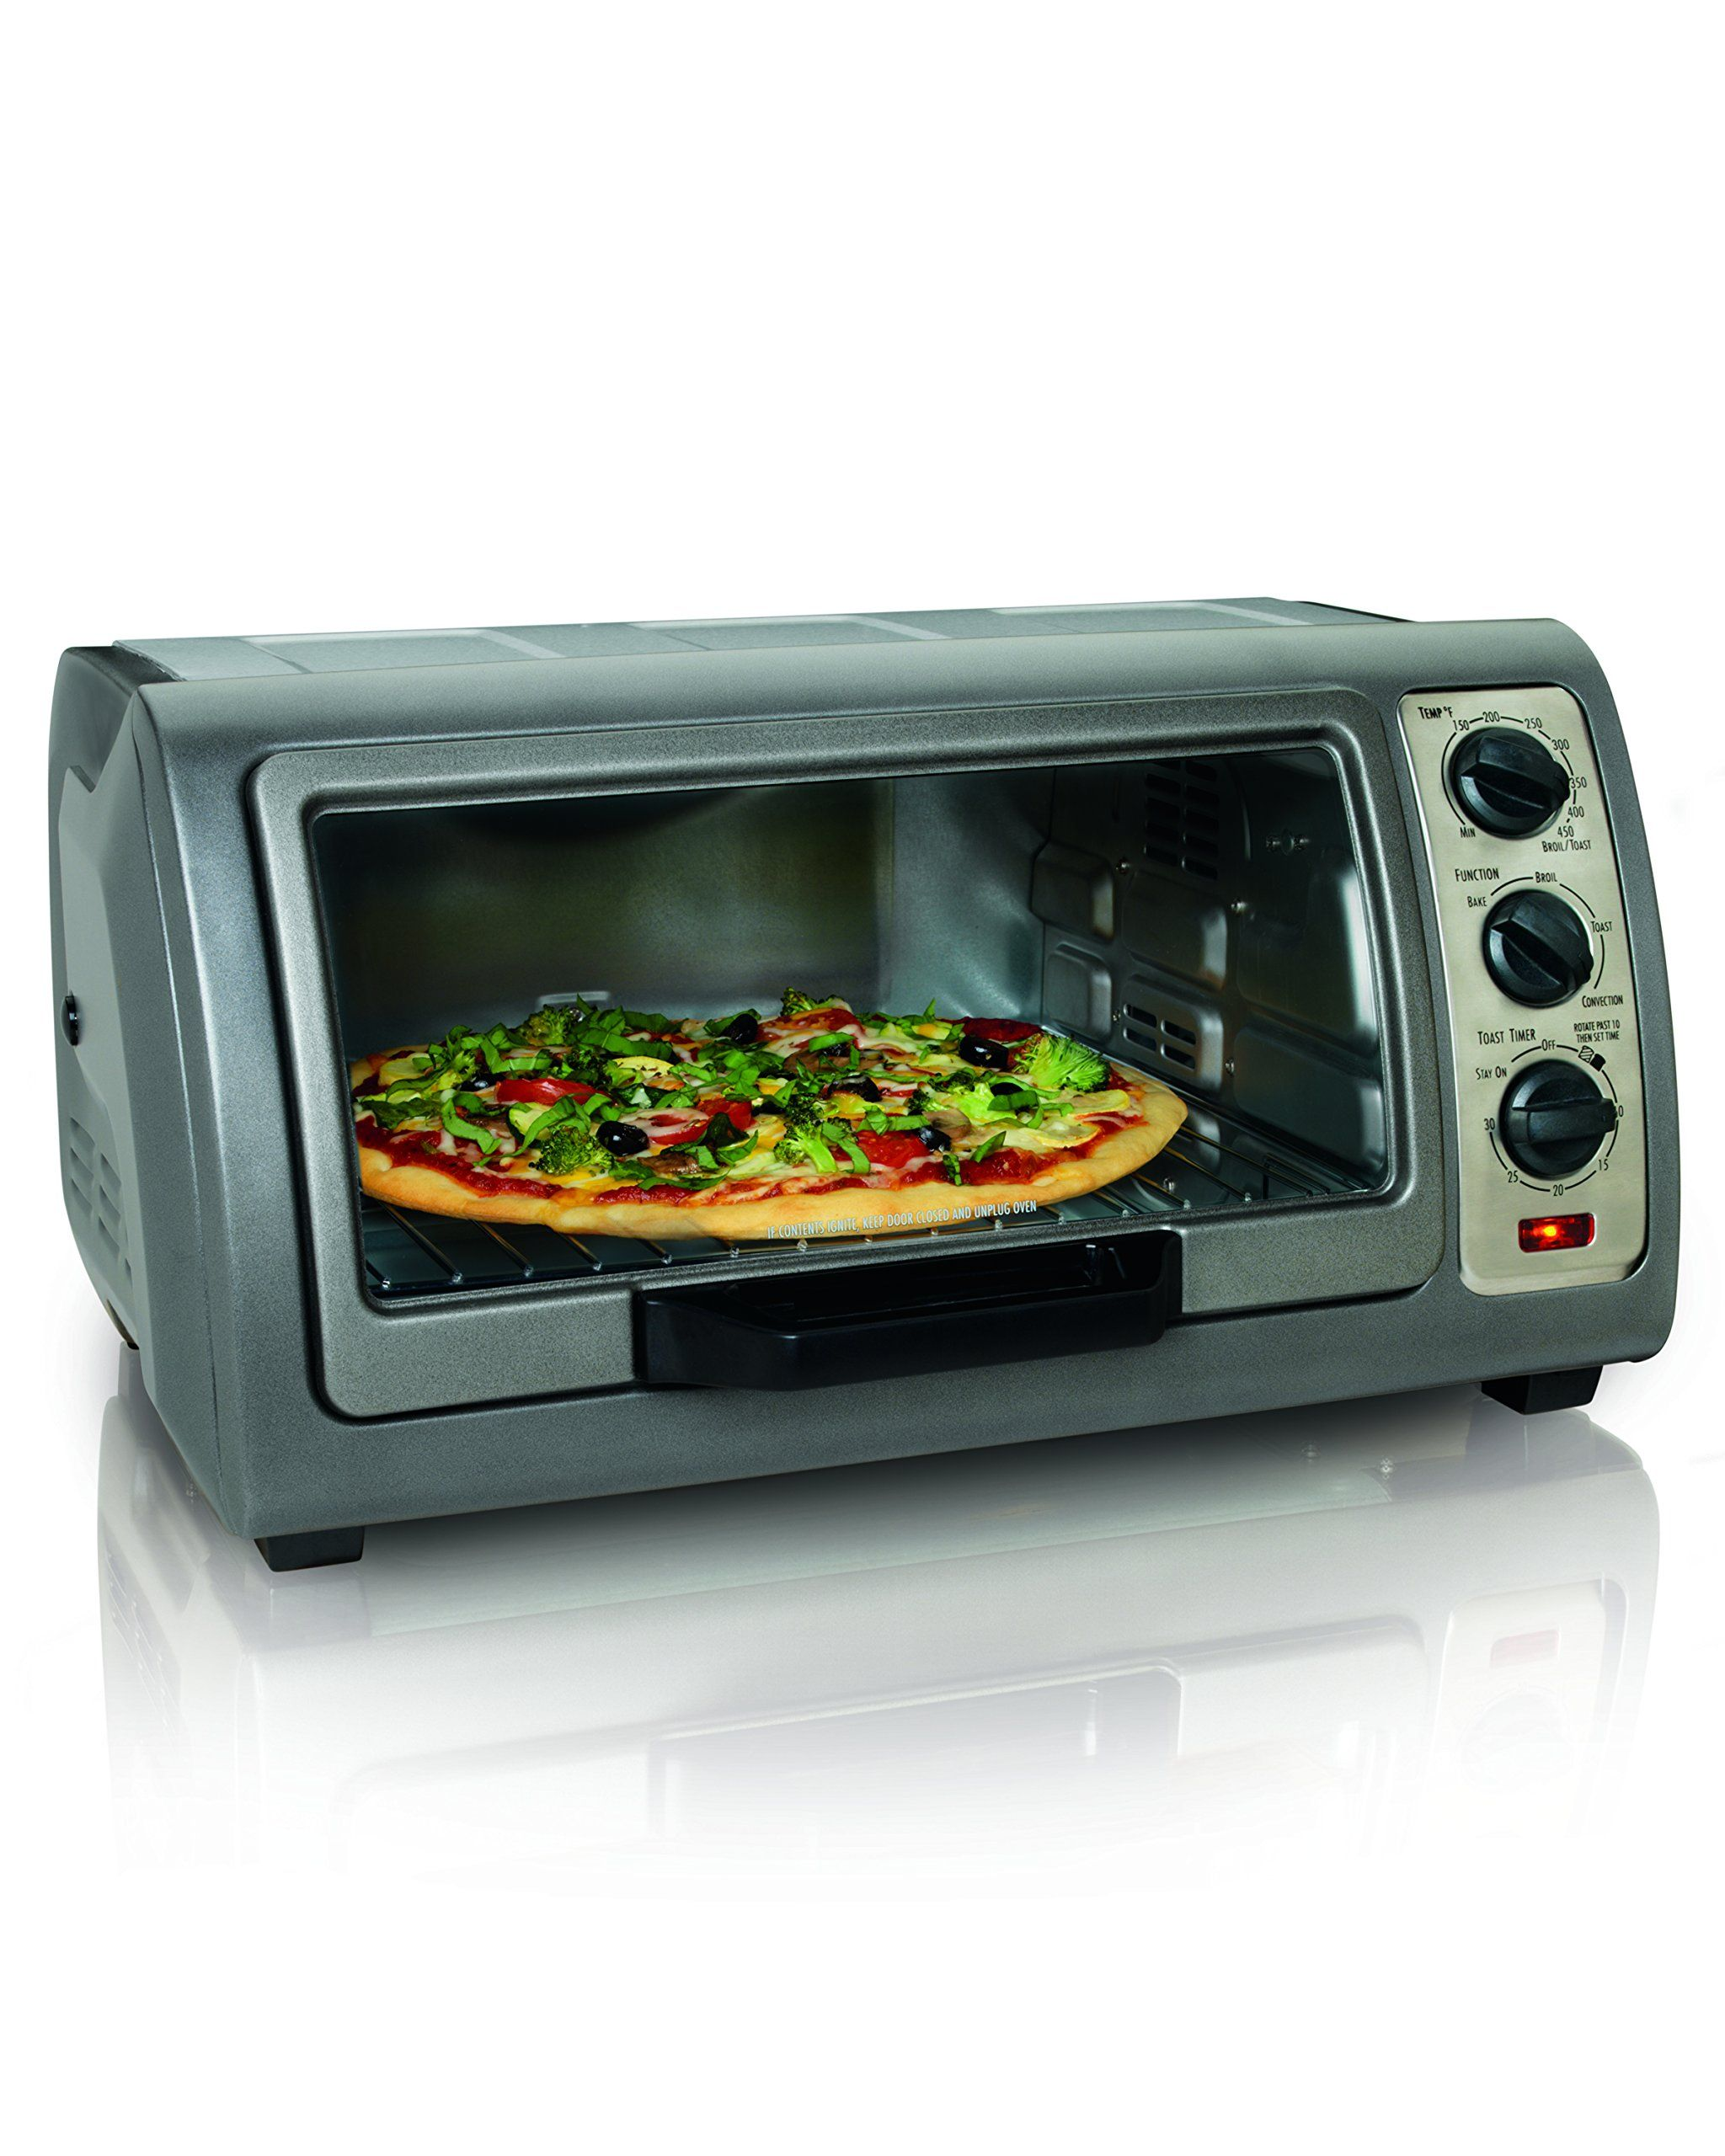 ovens steel toasters ensemble amazon black beach dp toastation hamilton best toaster ultimate rated com cuisinart stainless pizza sellers oven reviewed reviews